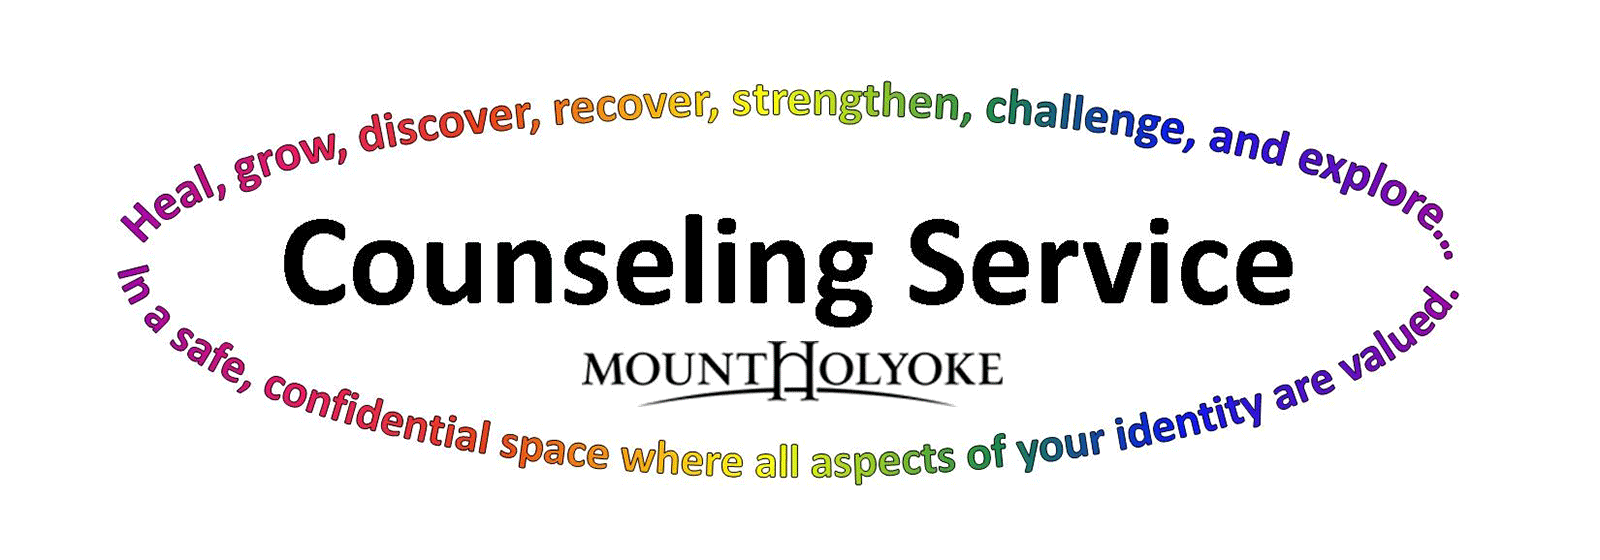 Graphic of Counseling Services with the Mount Holyoke logo